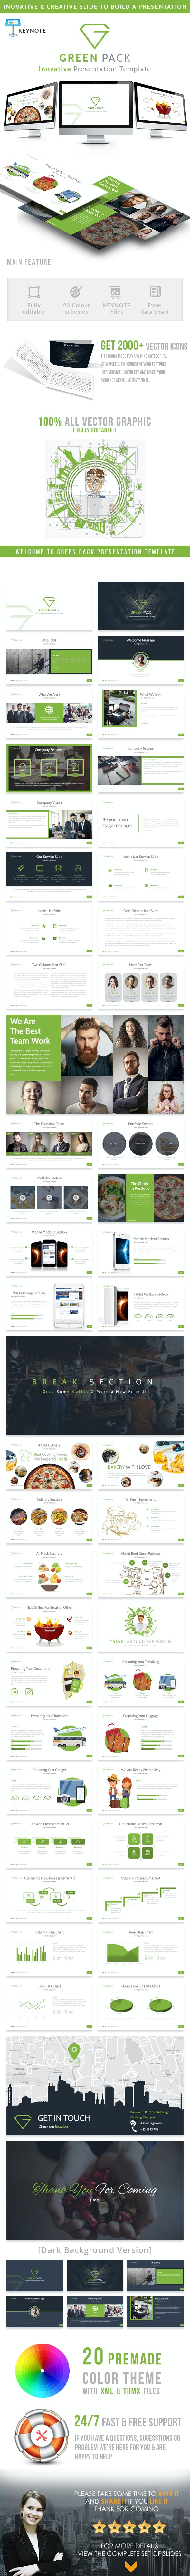 Green Pack Keynote Presentation Template - Business Keynote Templates